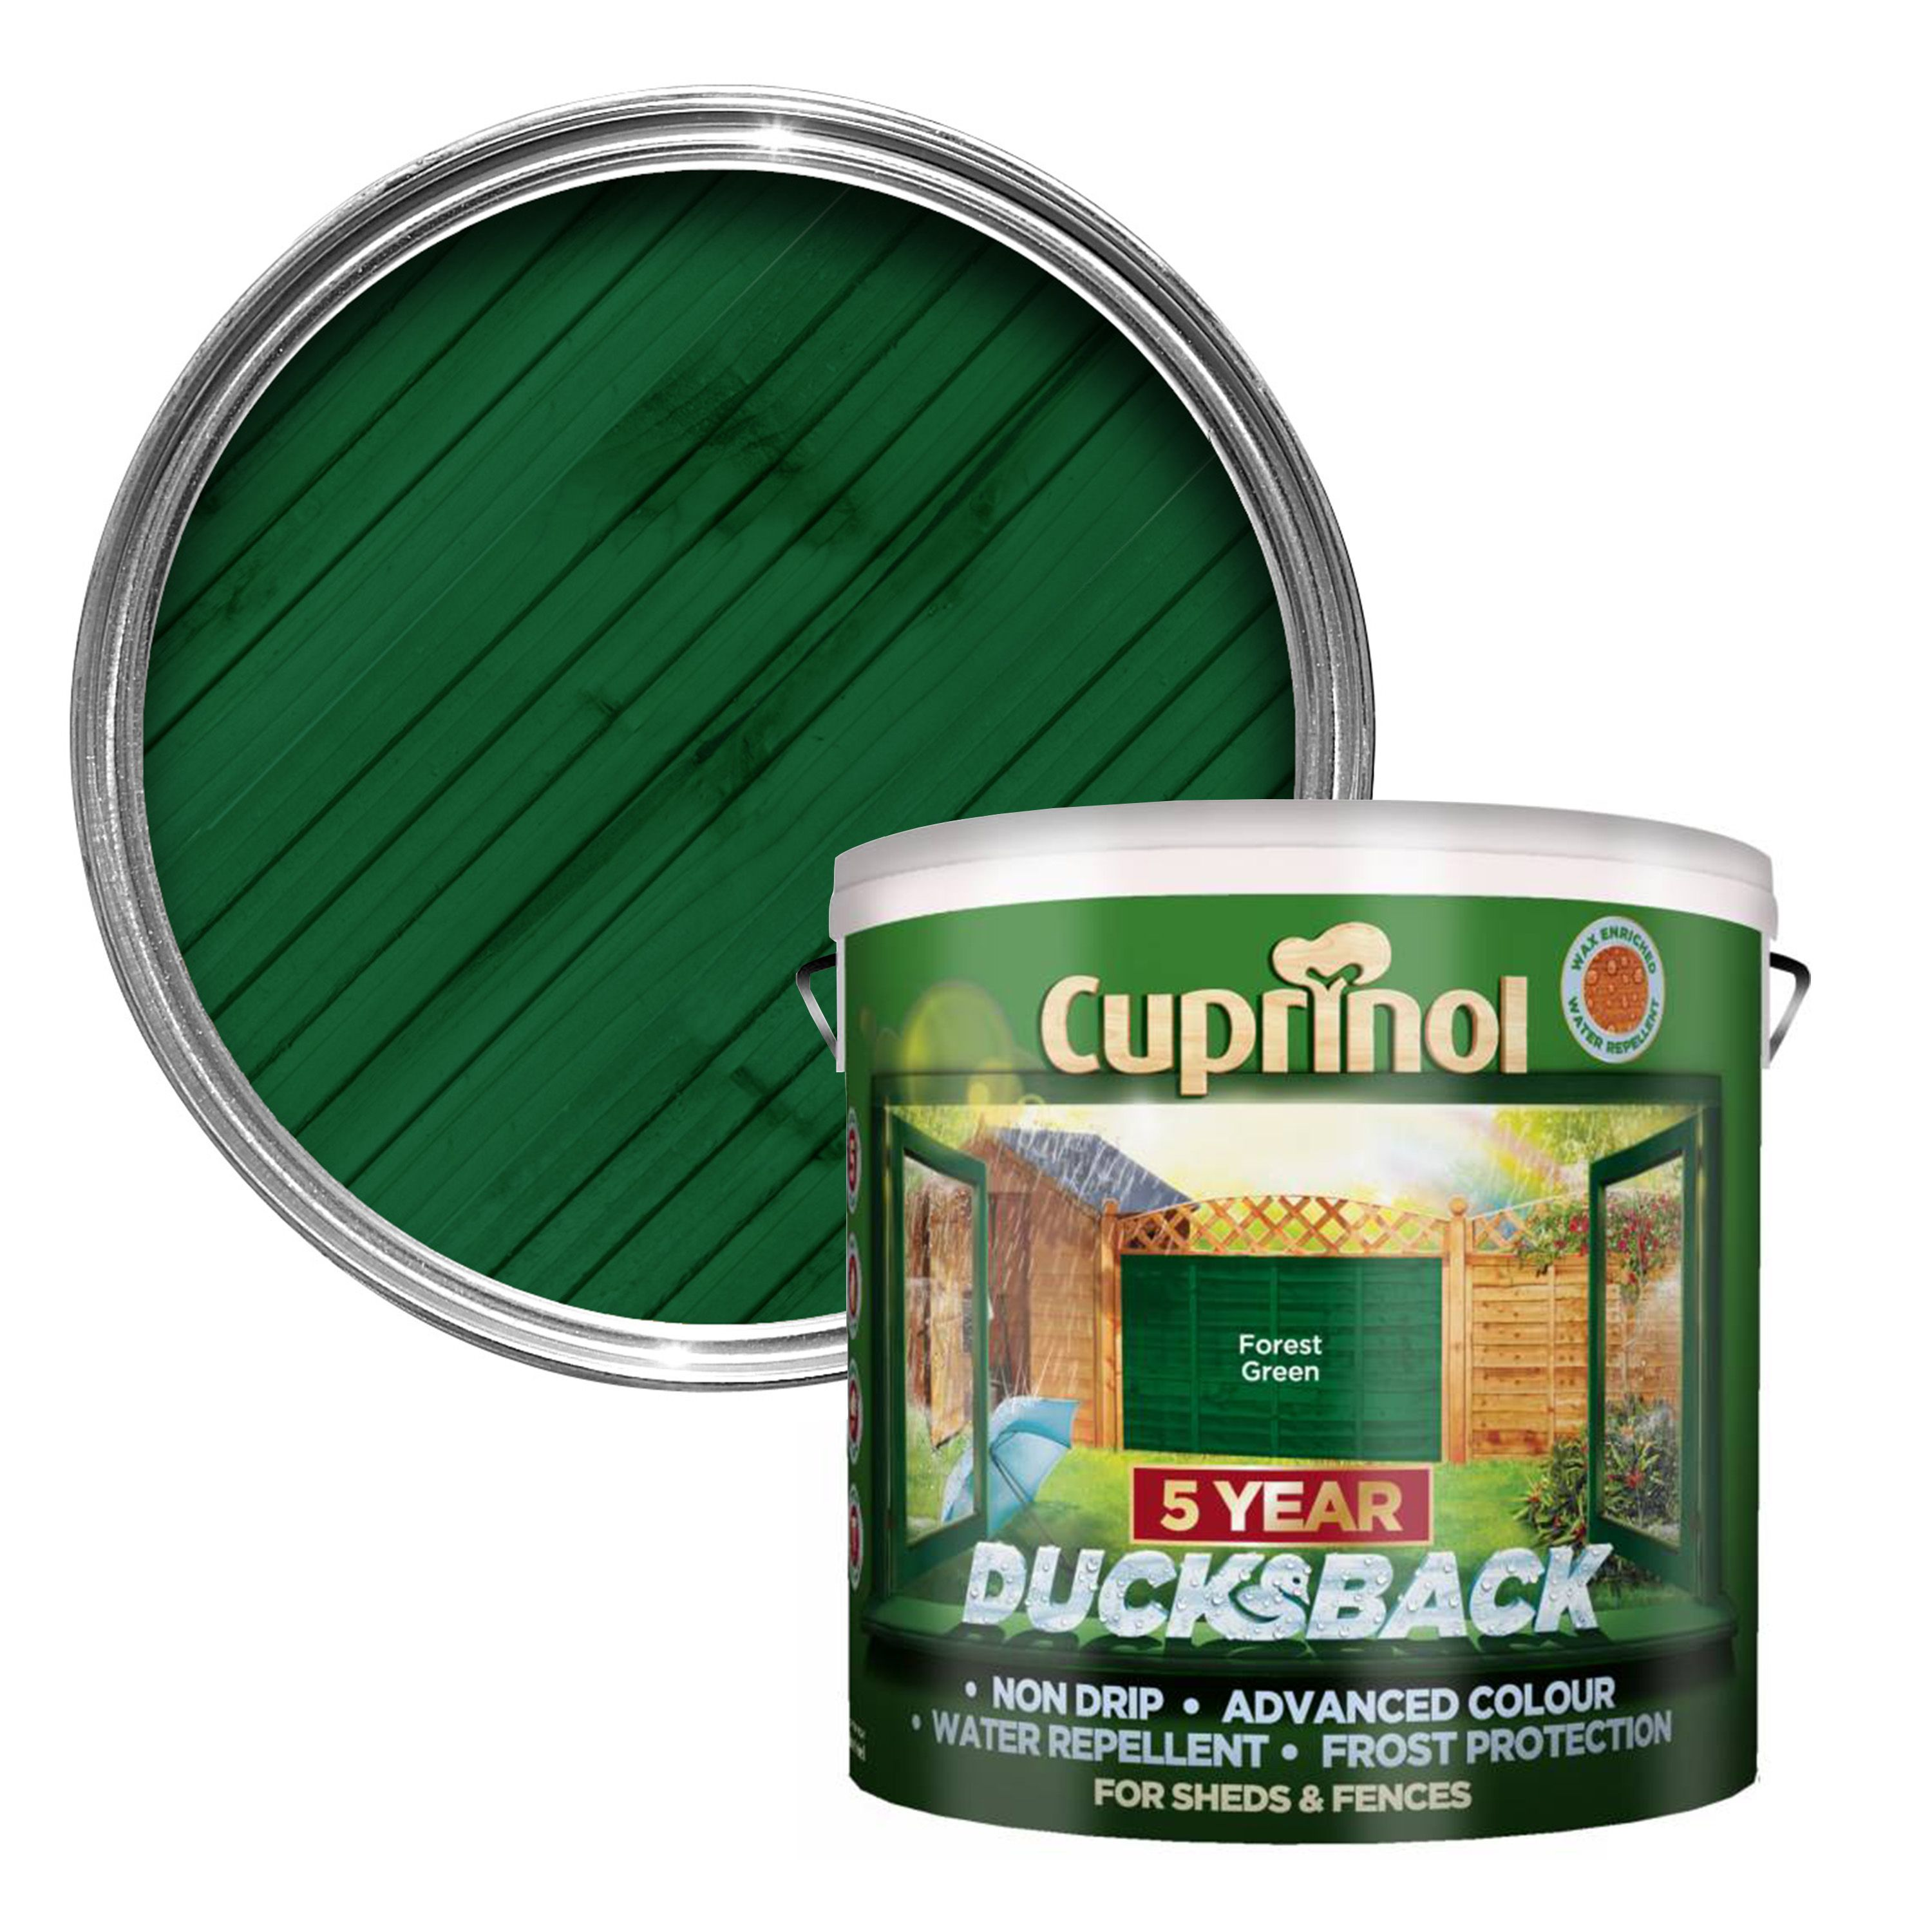 Cuprinol 5 Year Ducksback Forest Green Shed Amp Fence